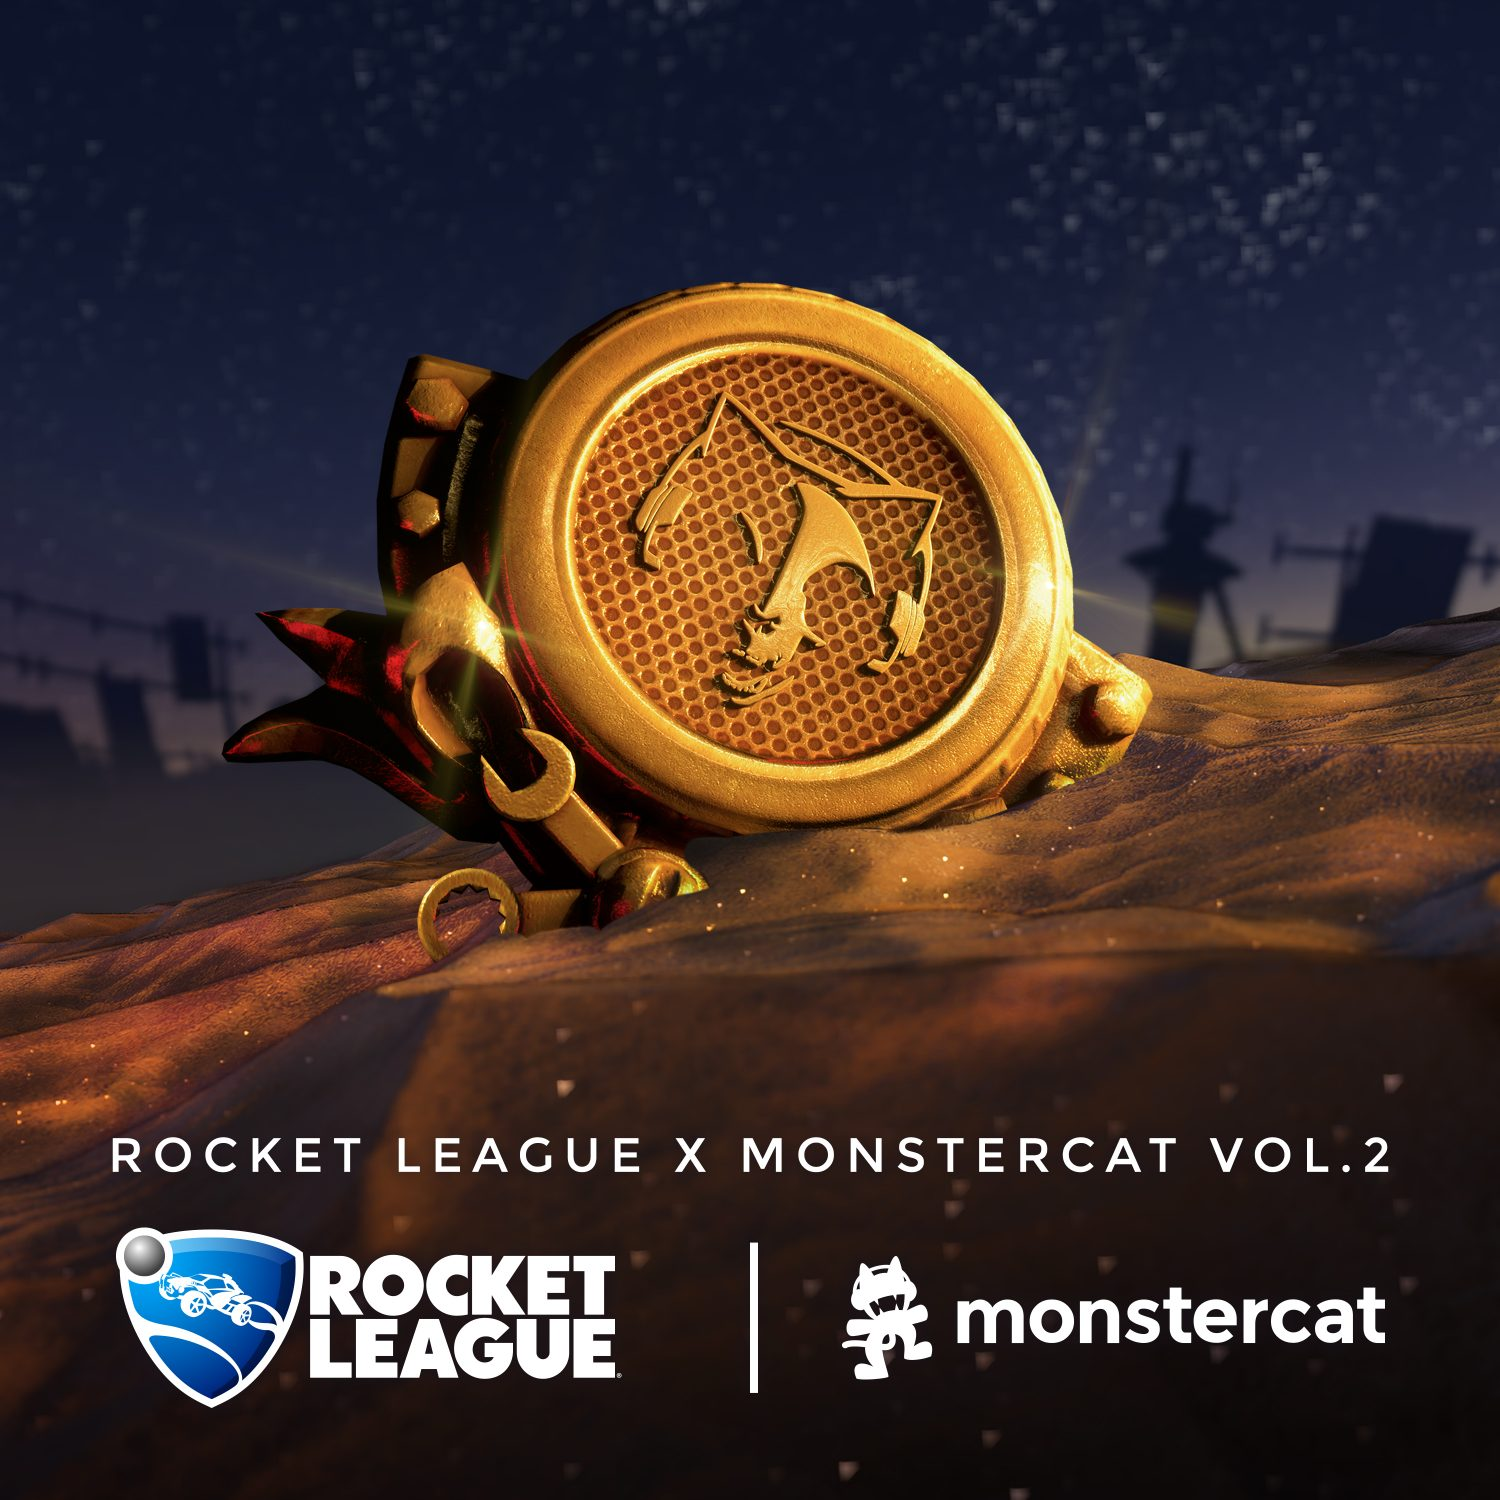 Rocket League Monstercat Vol. 2